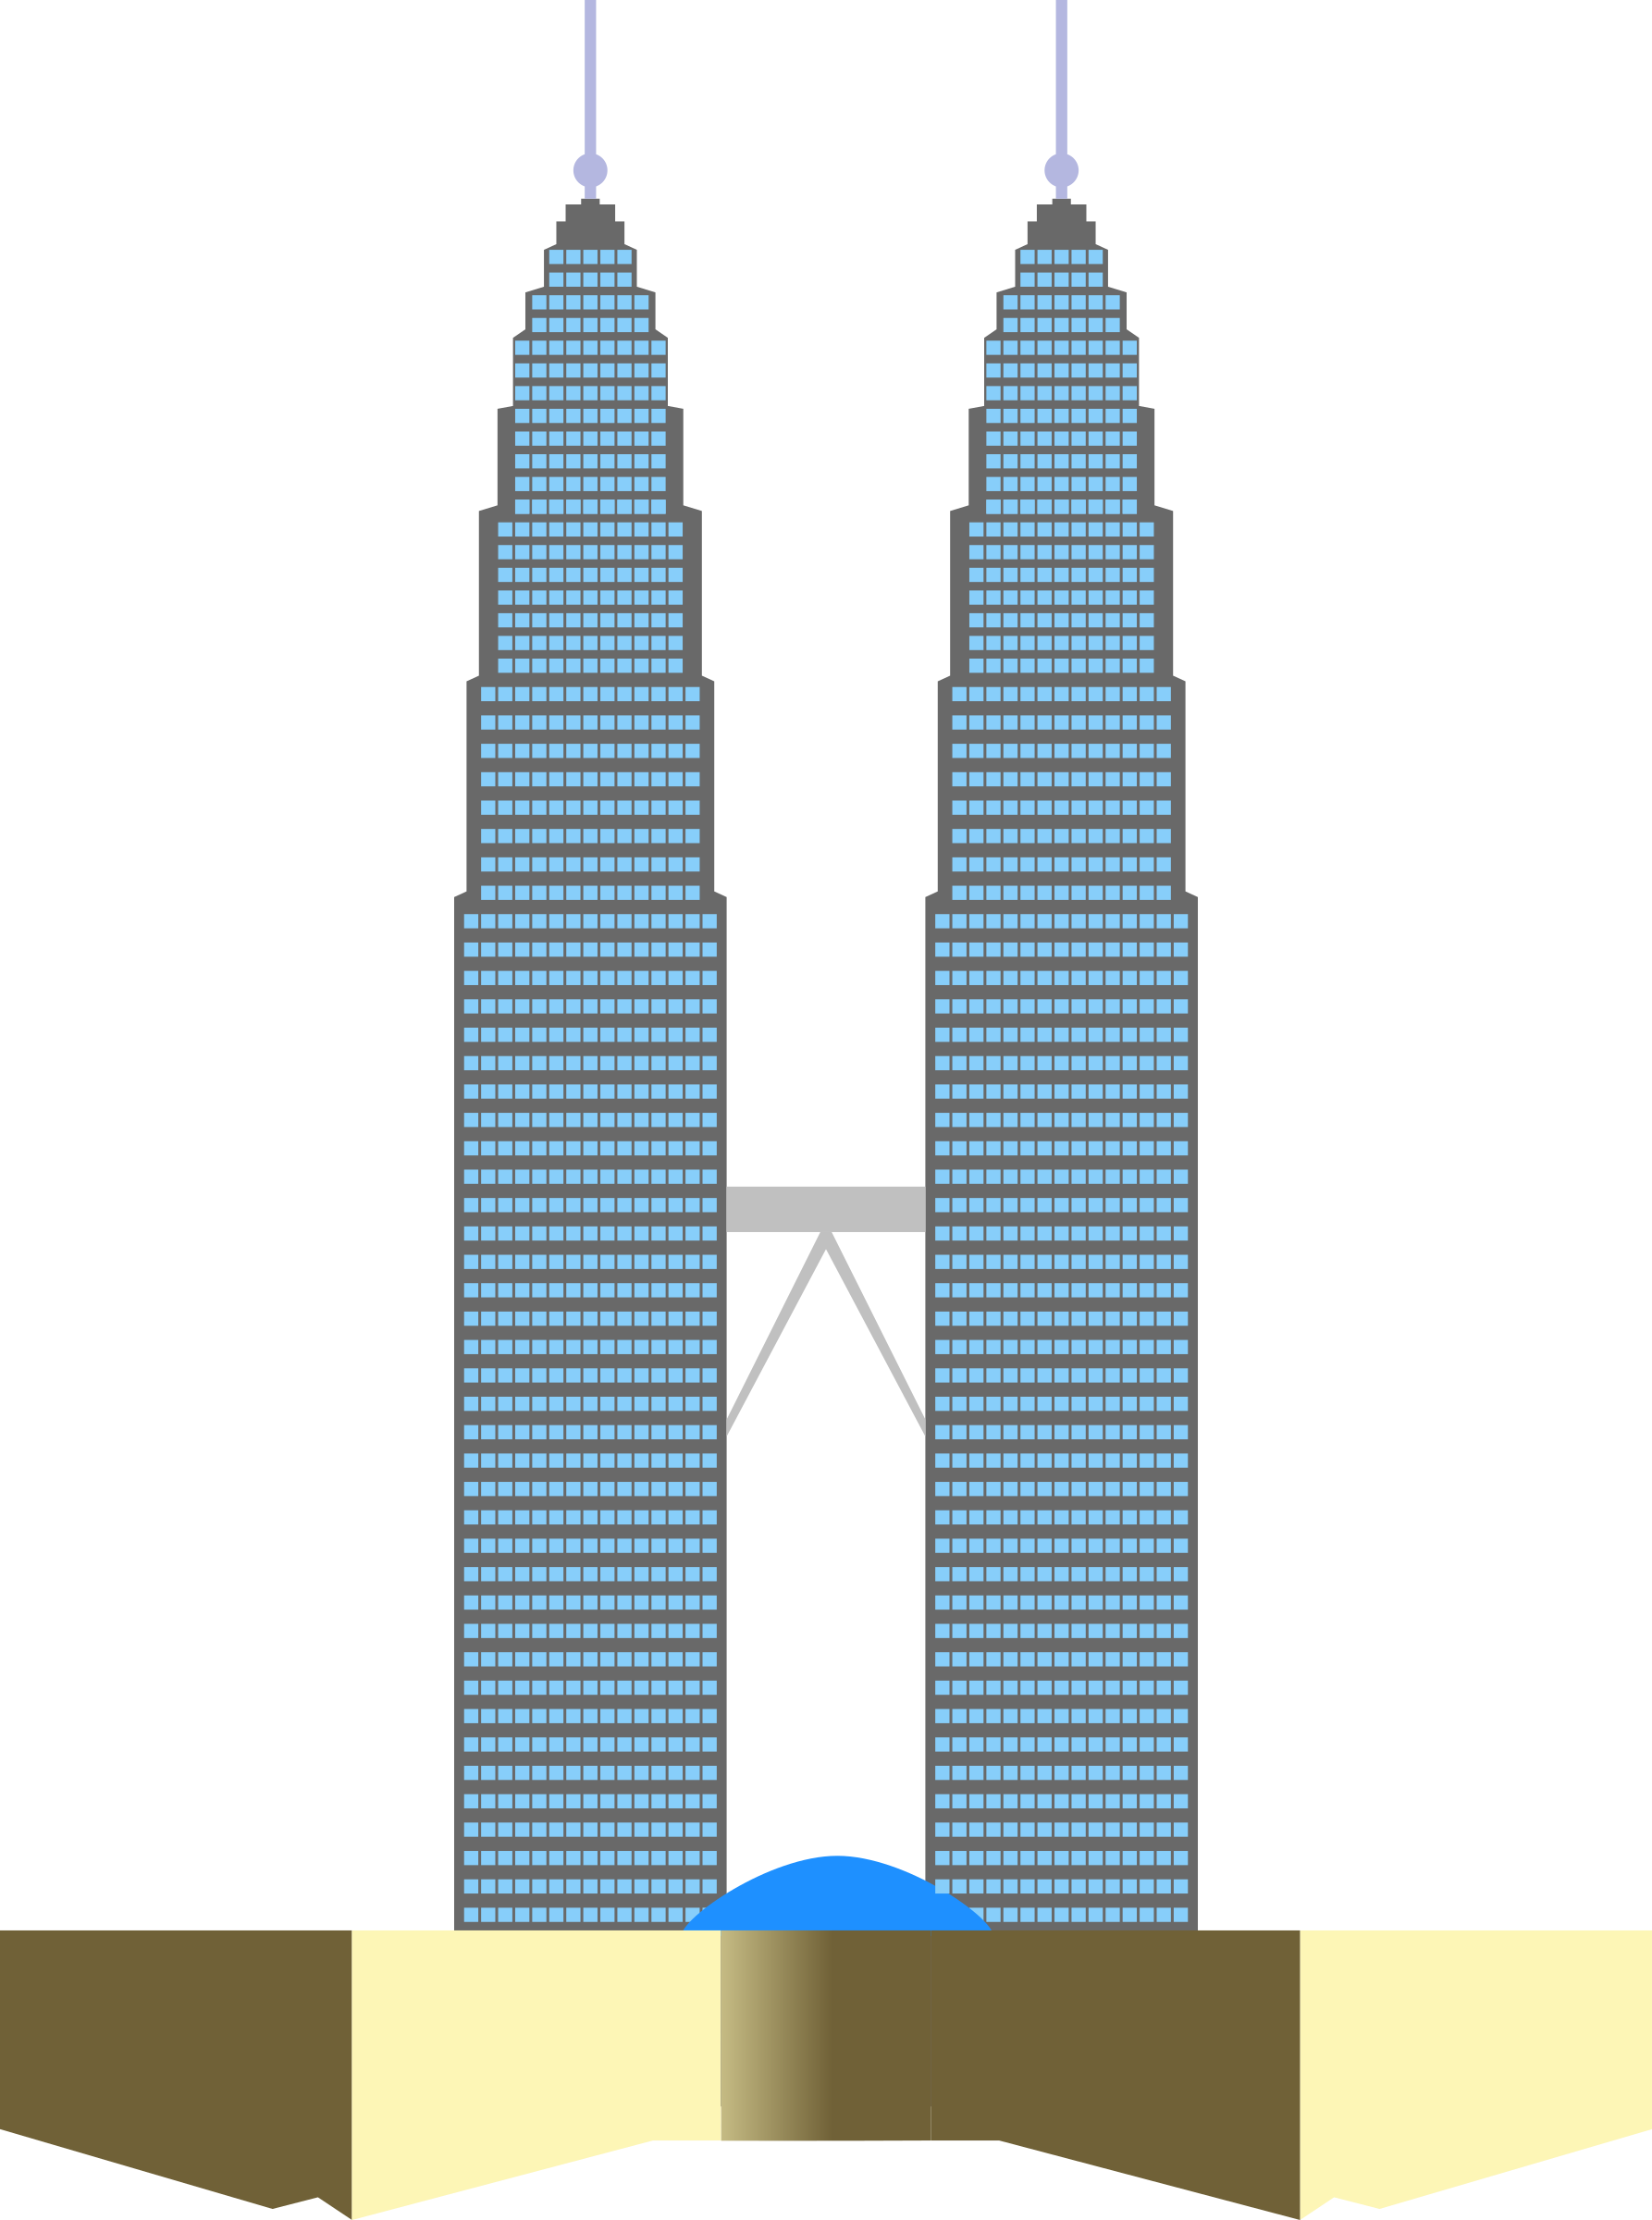 Tower clipart office tower. Petronas twin towers big